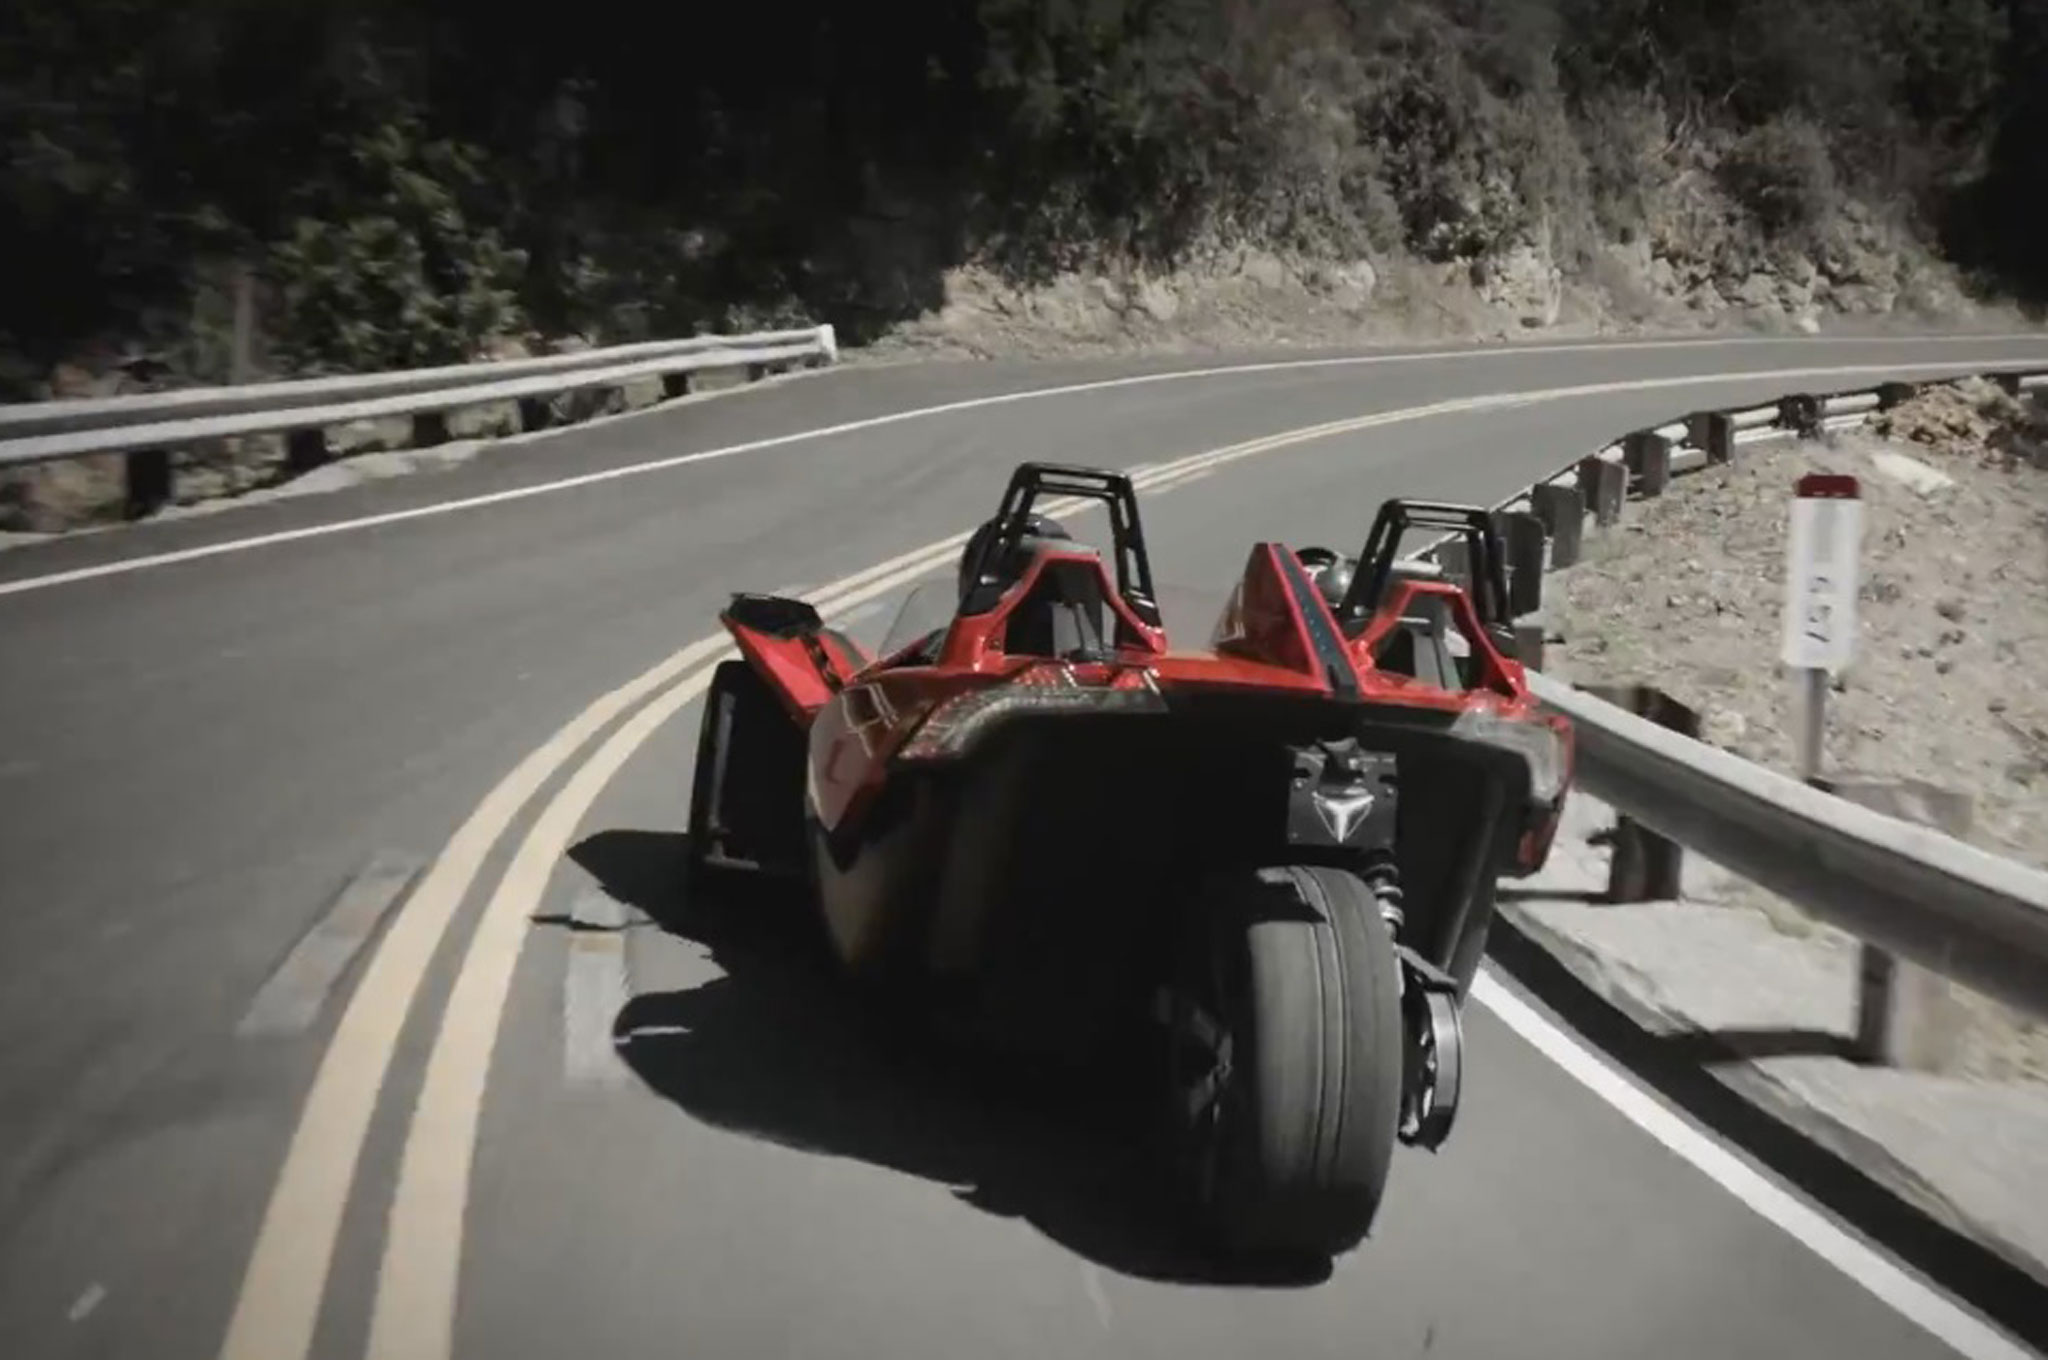 2015-Polaris-Slingshot-rear-in-motion